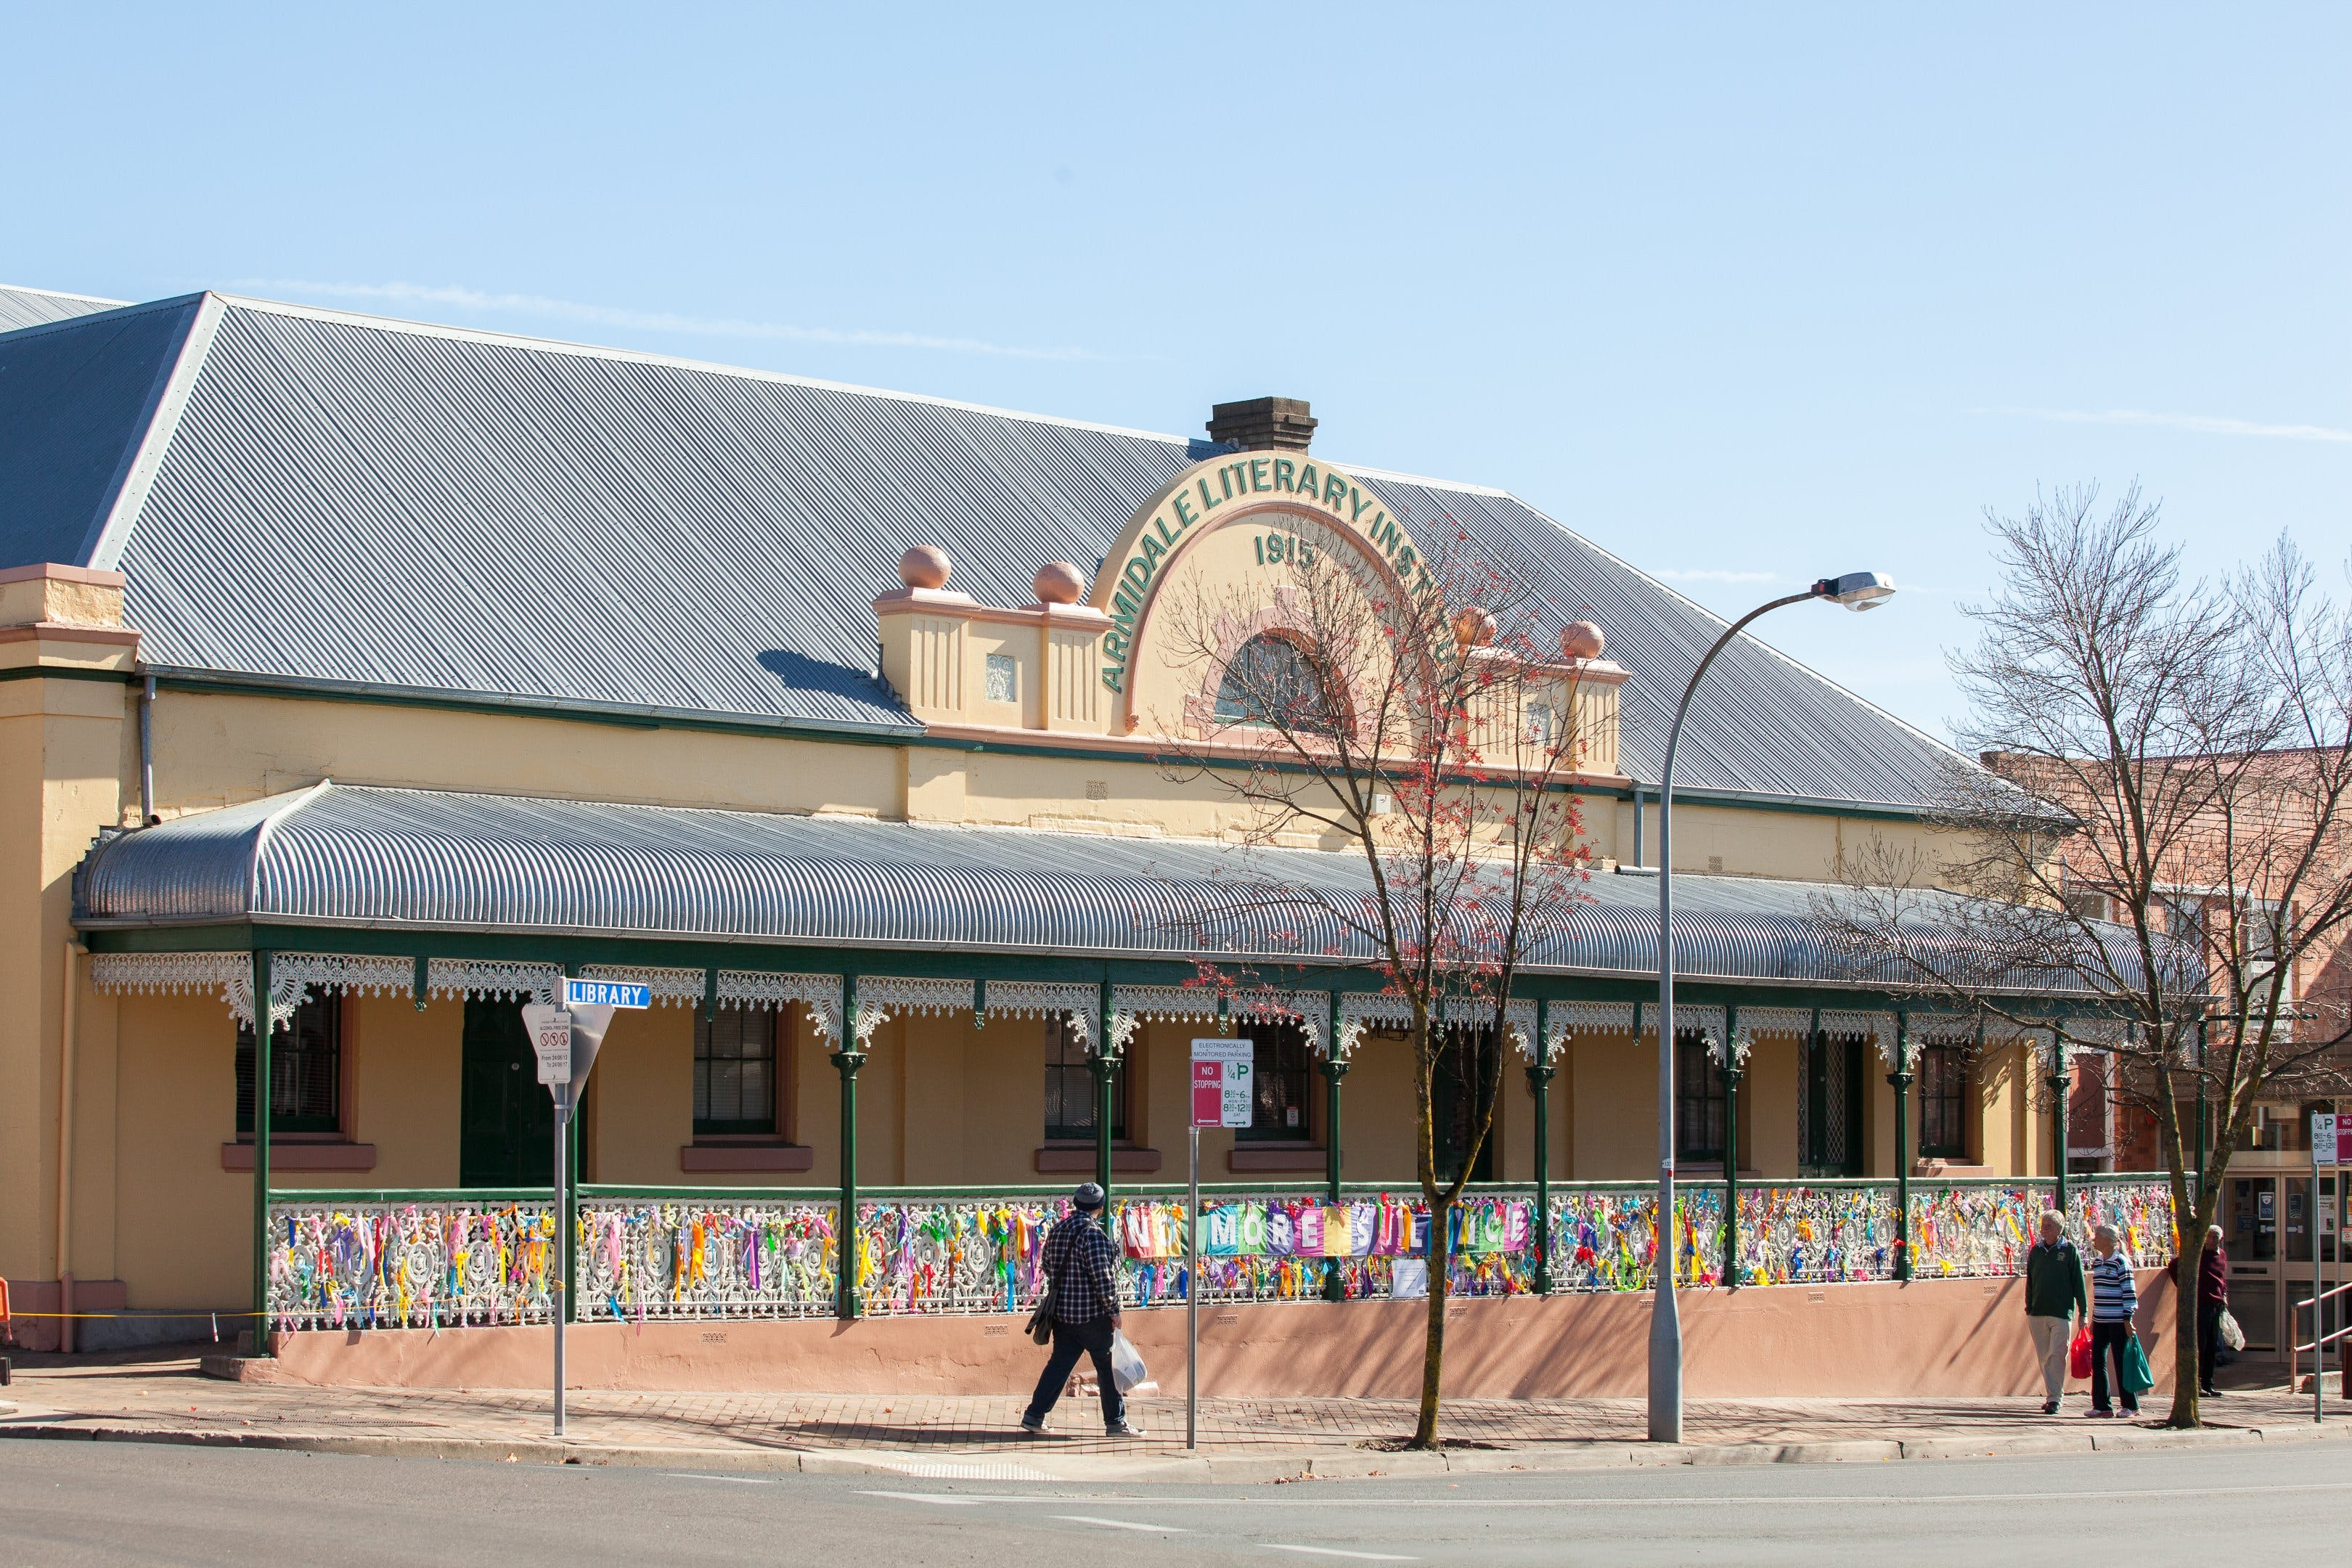 Armidale Folk Museum - Stayed